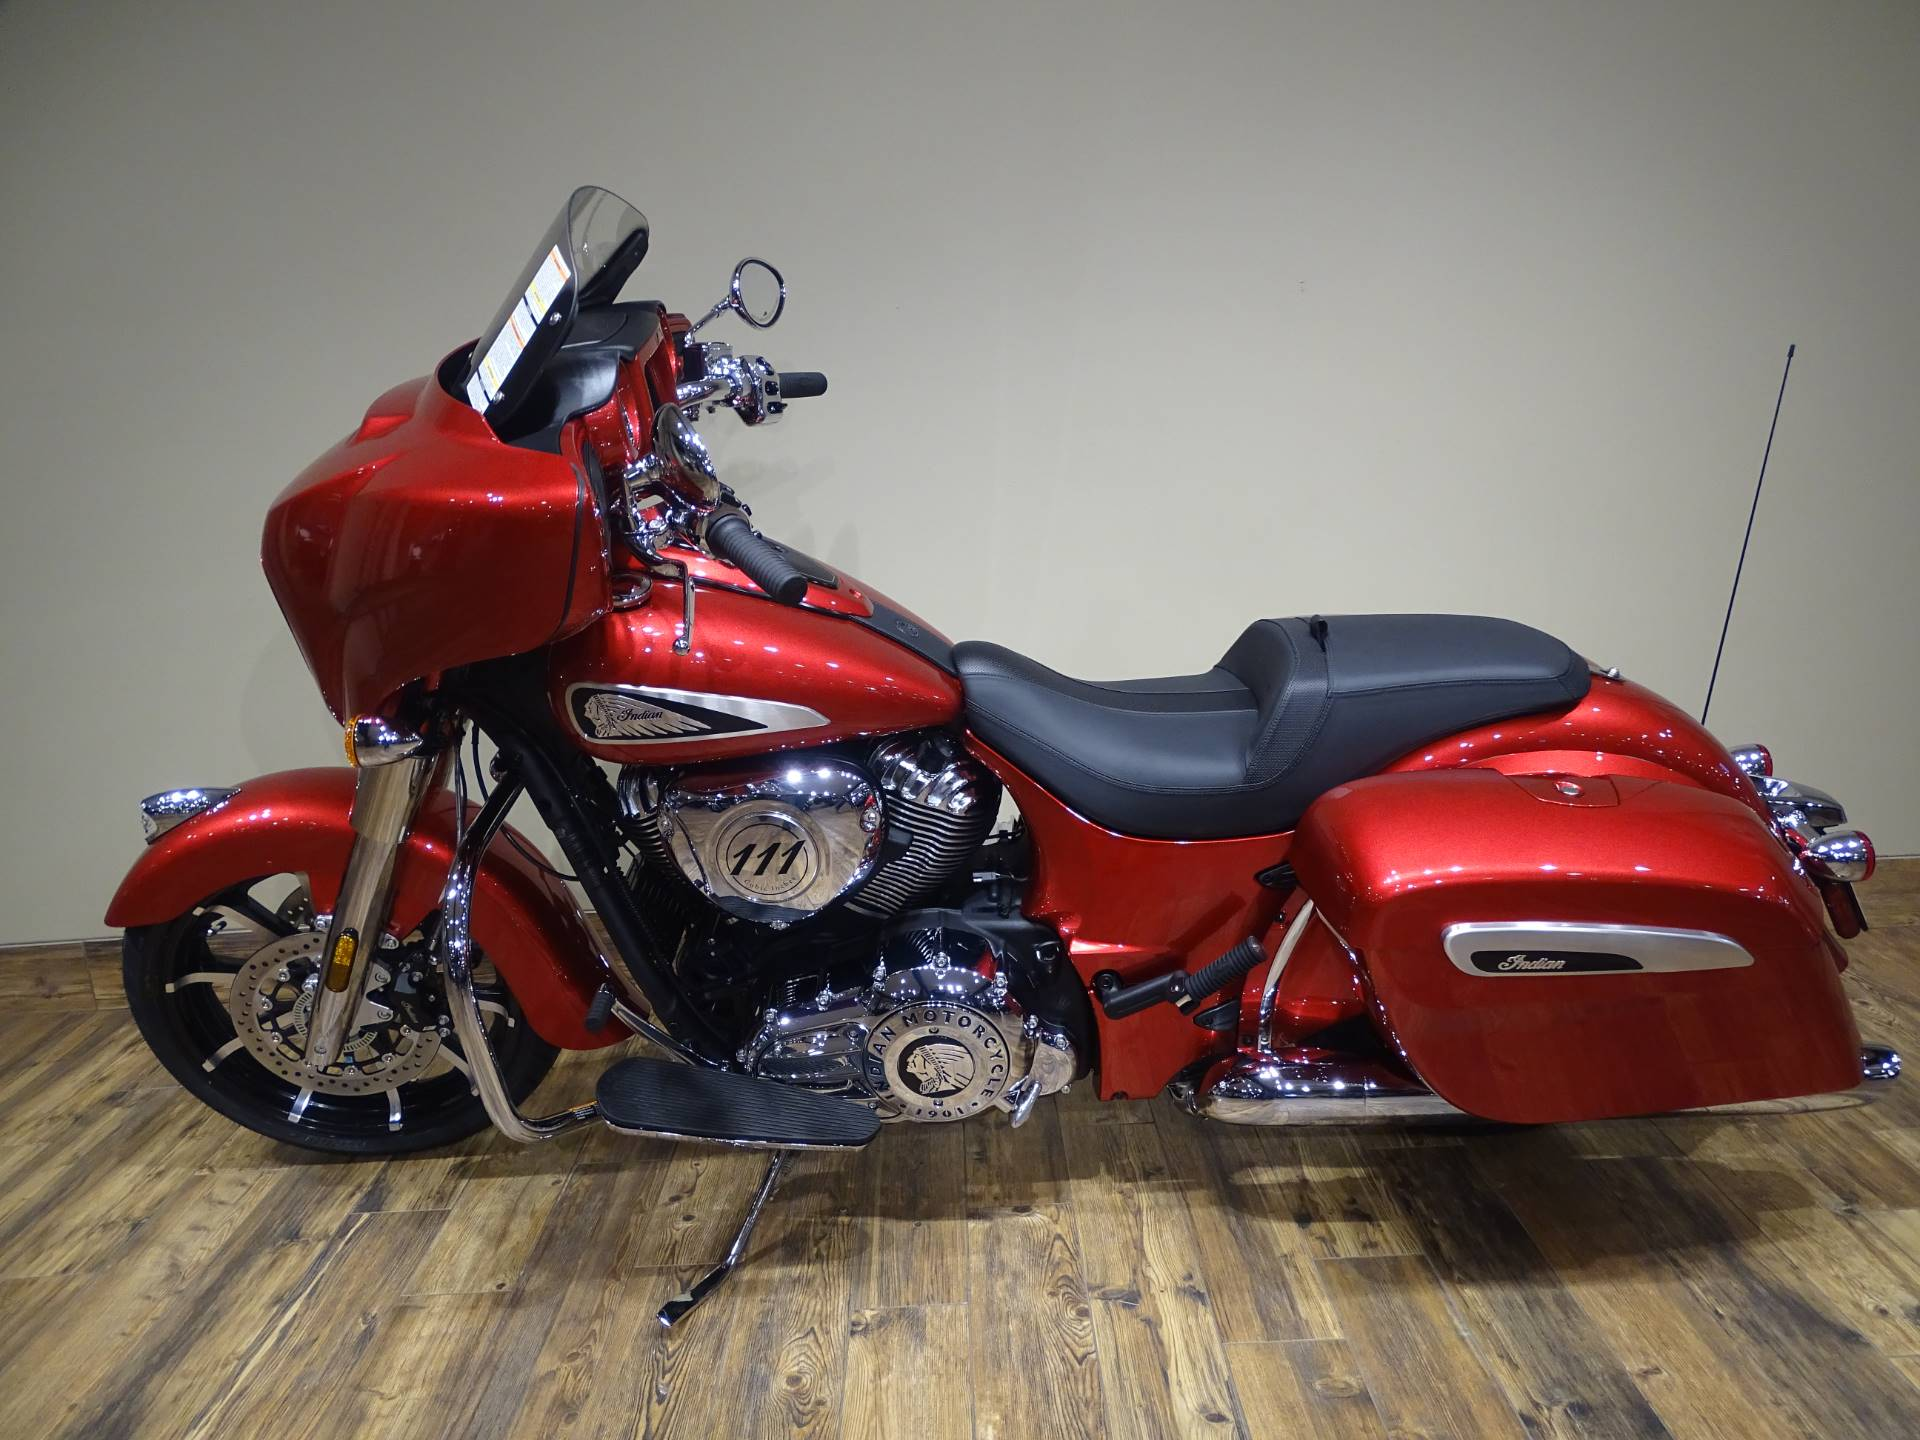 2019 Indian Chieftain® Limited ABS in Saint Michael, Minnesota - Photo 2